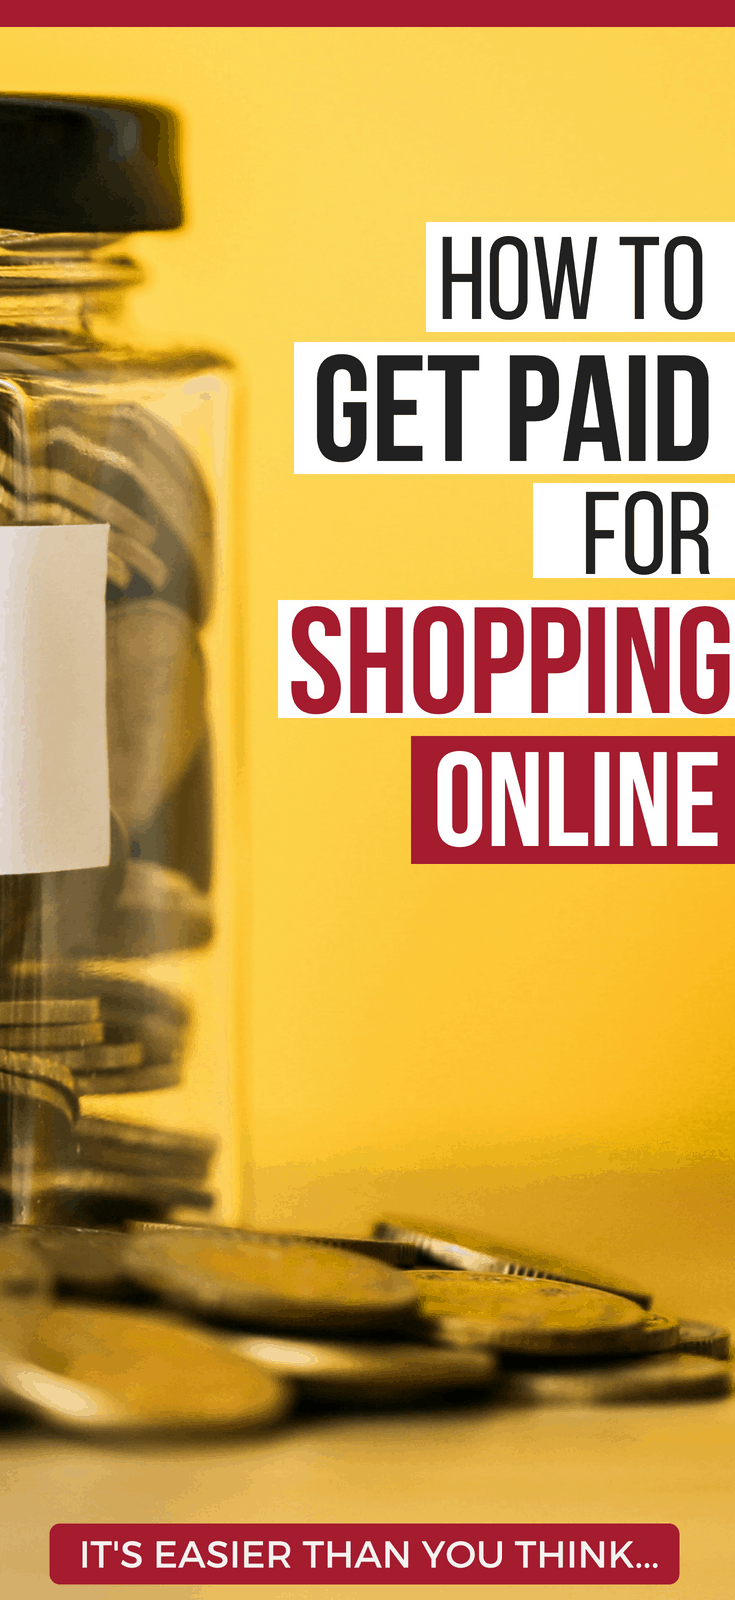 How to Get Paid for Shopping Online ebates how to use | ebates tips | best cash back apps | make money shopping online #thewaystowealth @onlineshopping #savingmoney #savemoney